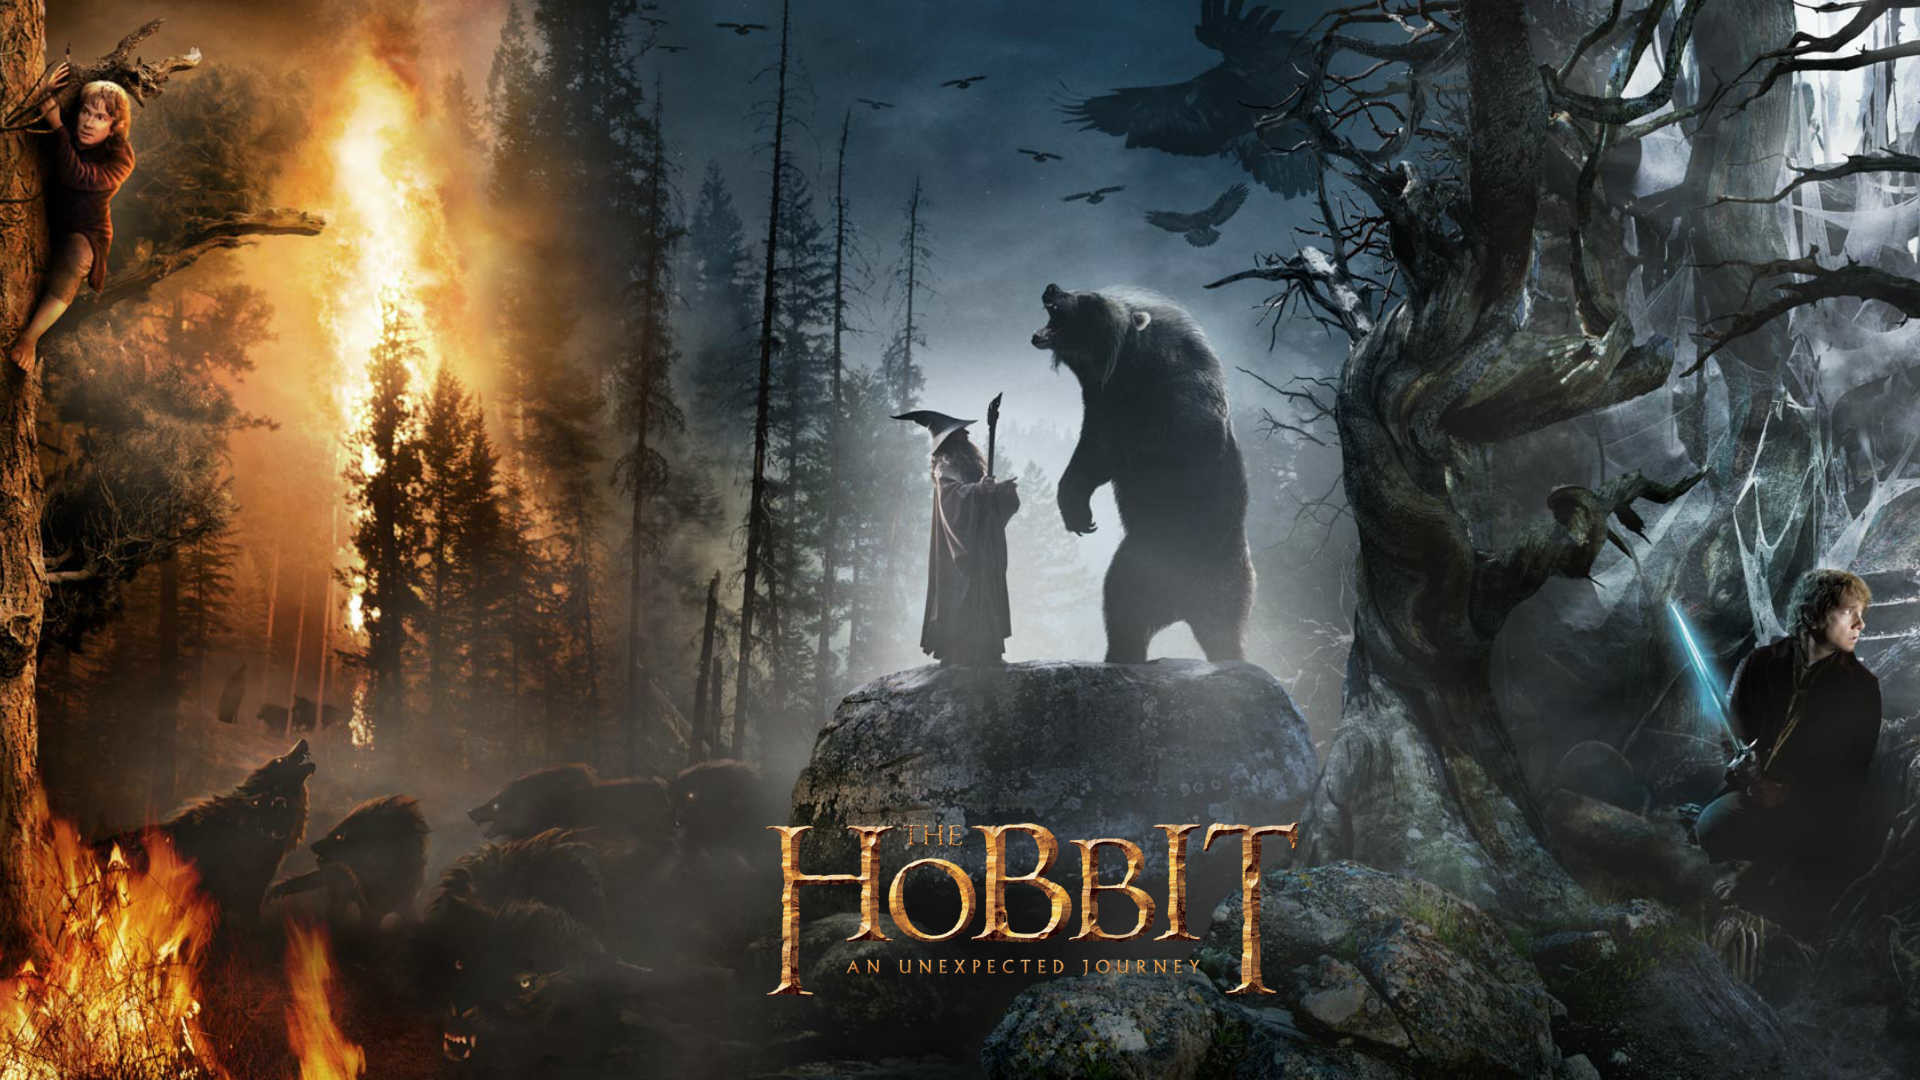 1920x1080 Movie_the hobbit_ an unexpected journey_284450 ...